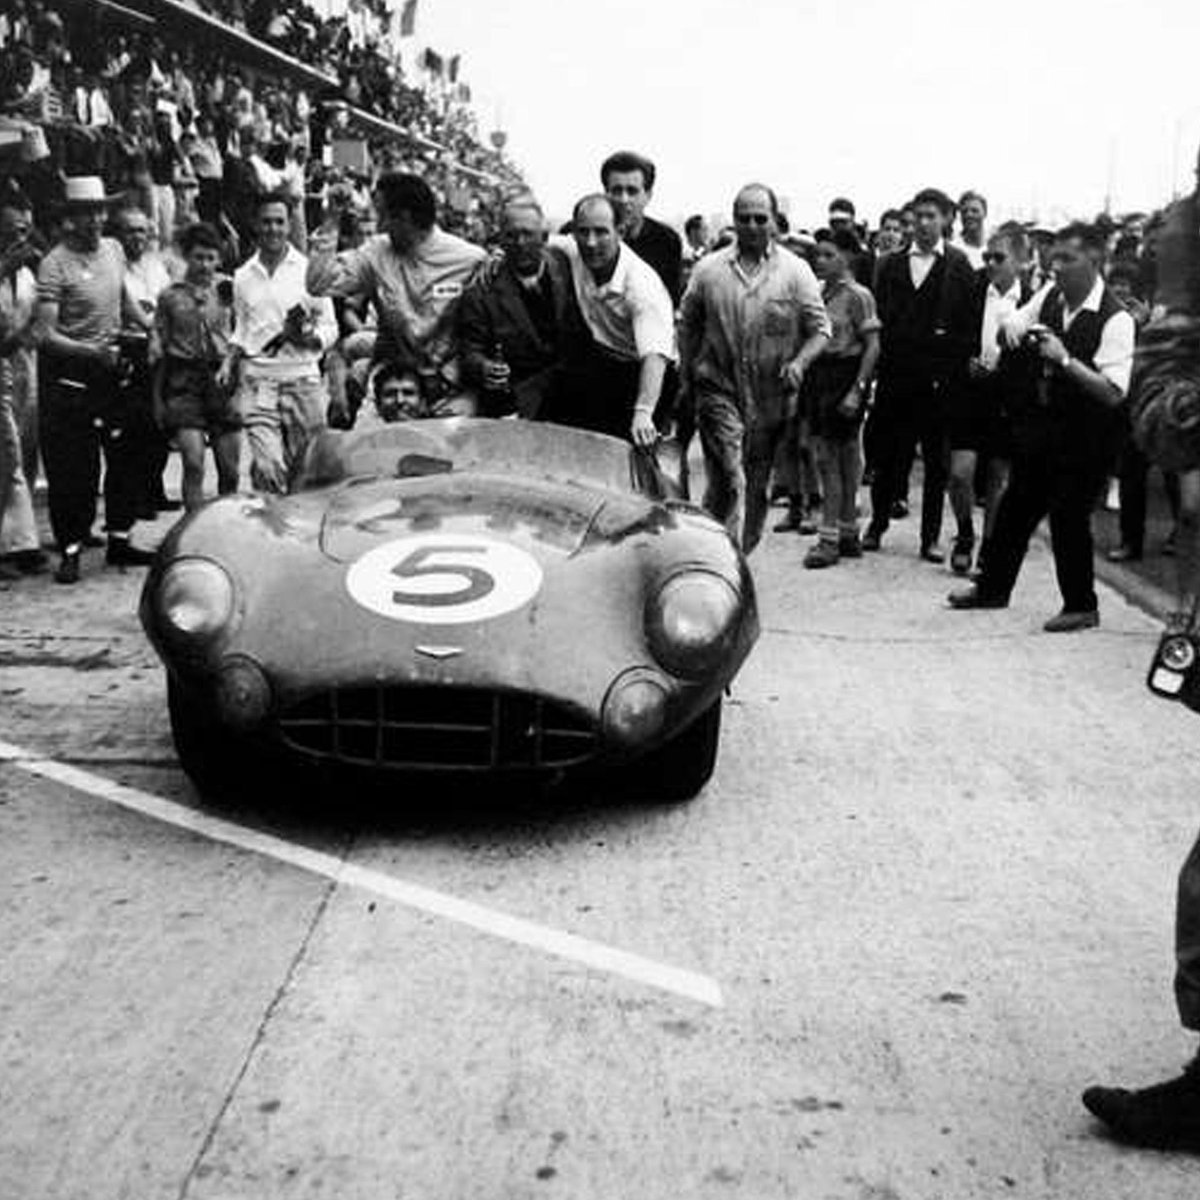 Carroll Shelby at 1959 Le Mans